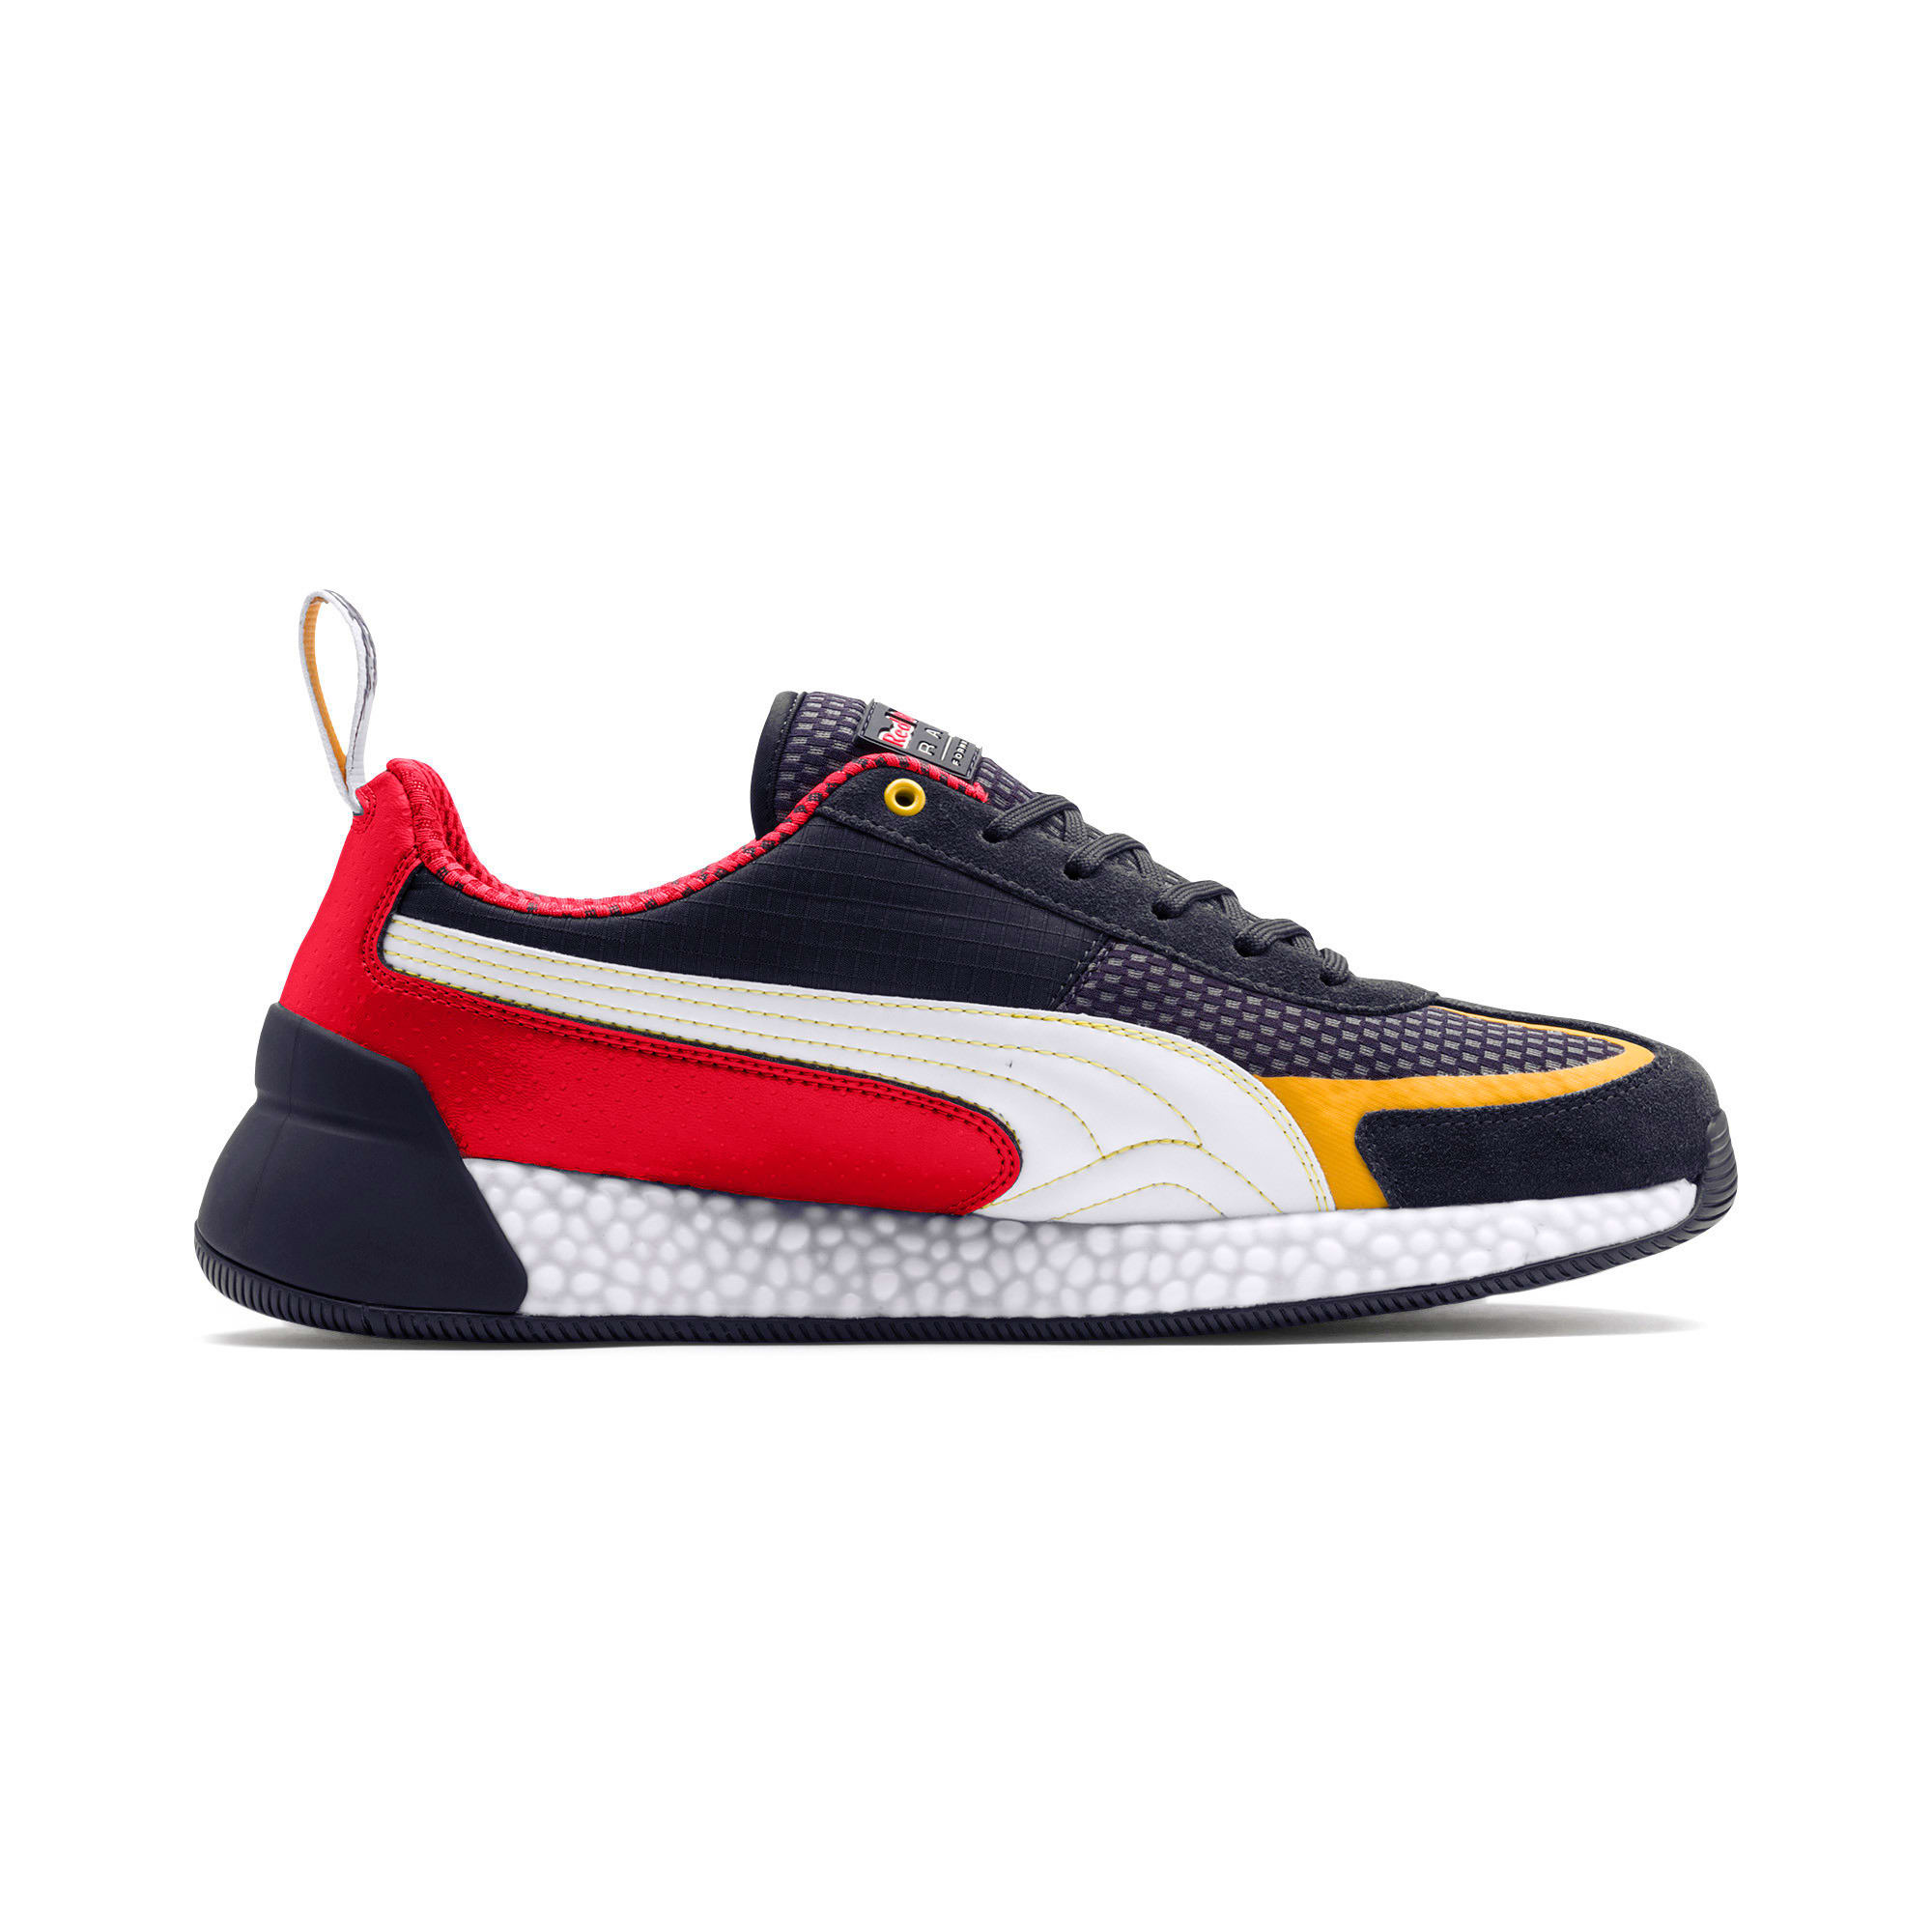 Thumbnail 7 of Red Bull Racing Speed HYBRID Men's Trainers, NIGHT SKY-White-Chinese Red, medium-IND